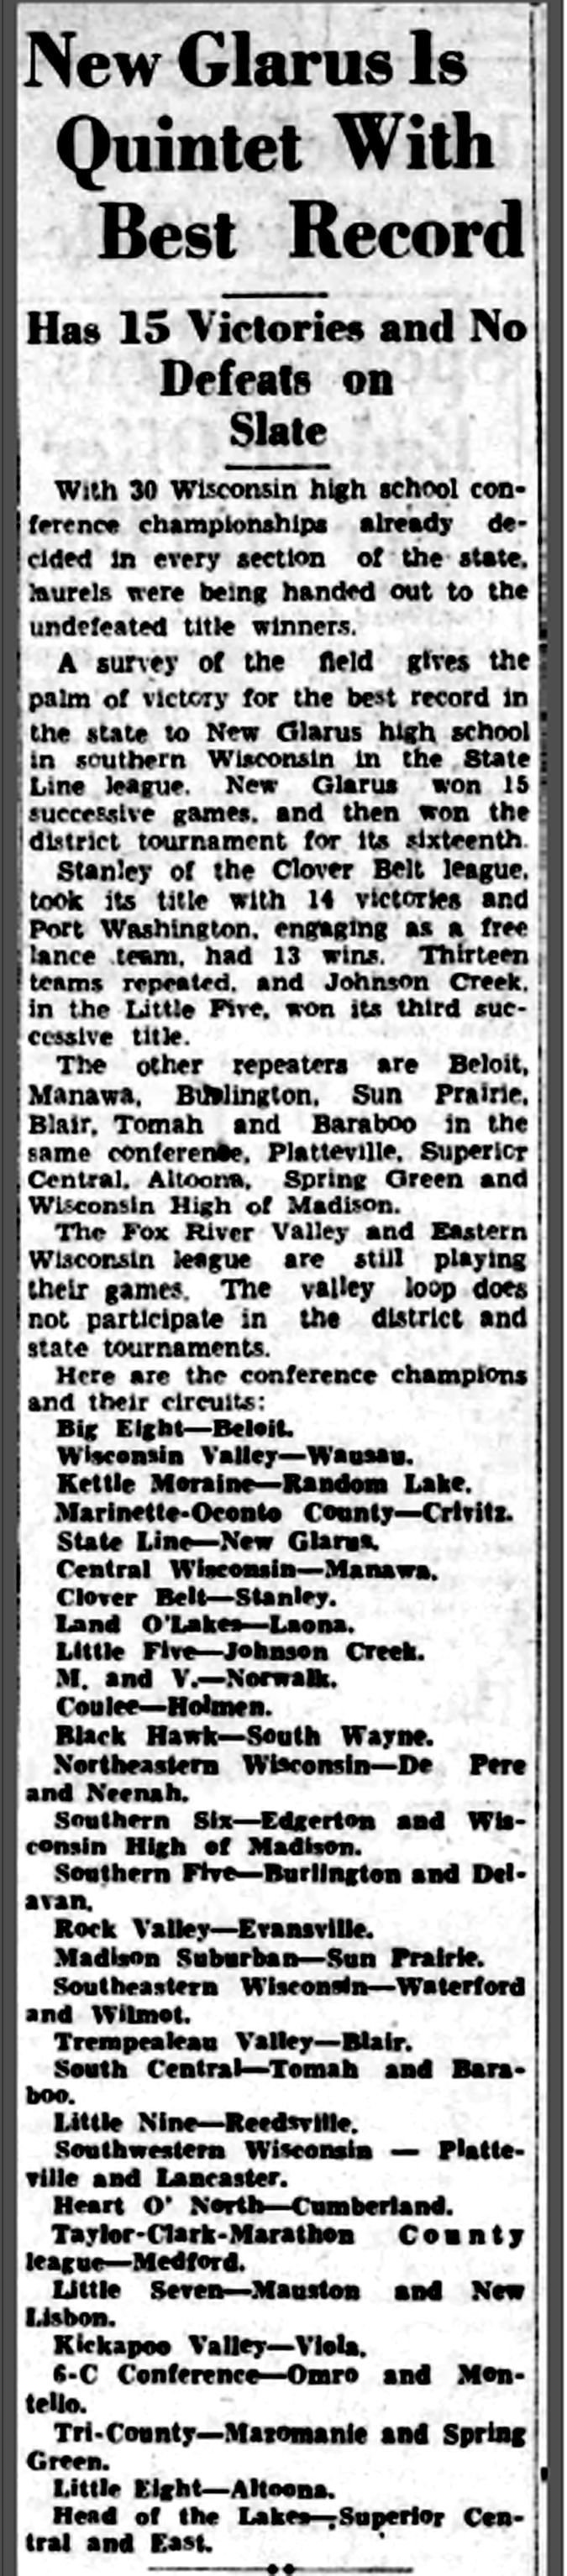 WIAA boys basketball history photo: New Glarus wins the 1932 State Line League title